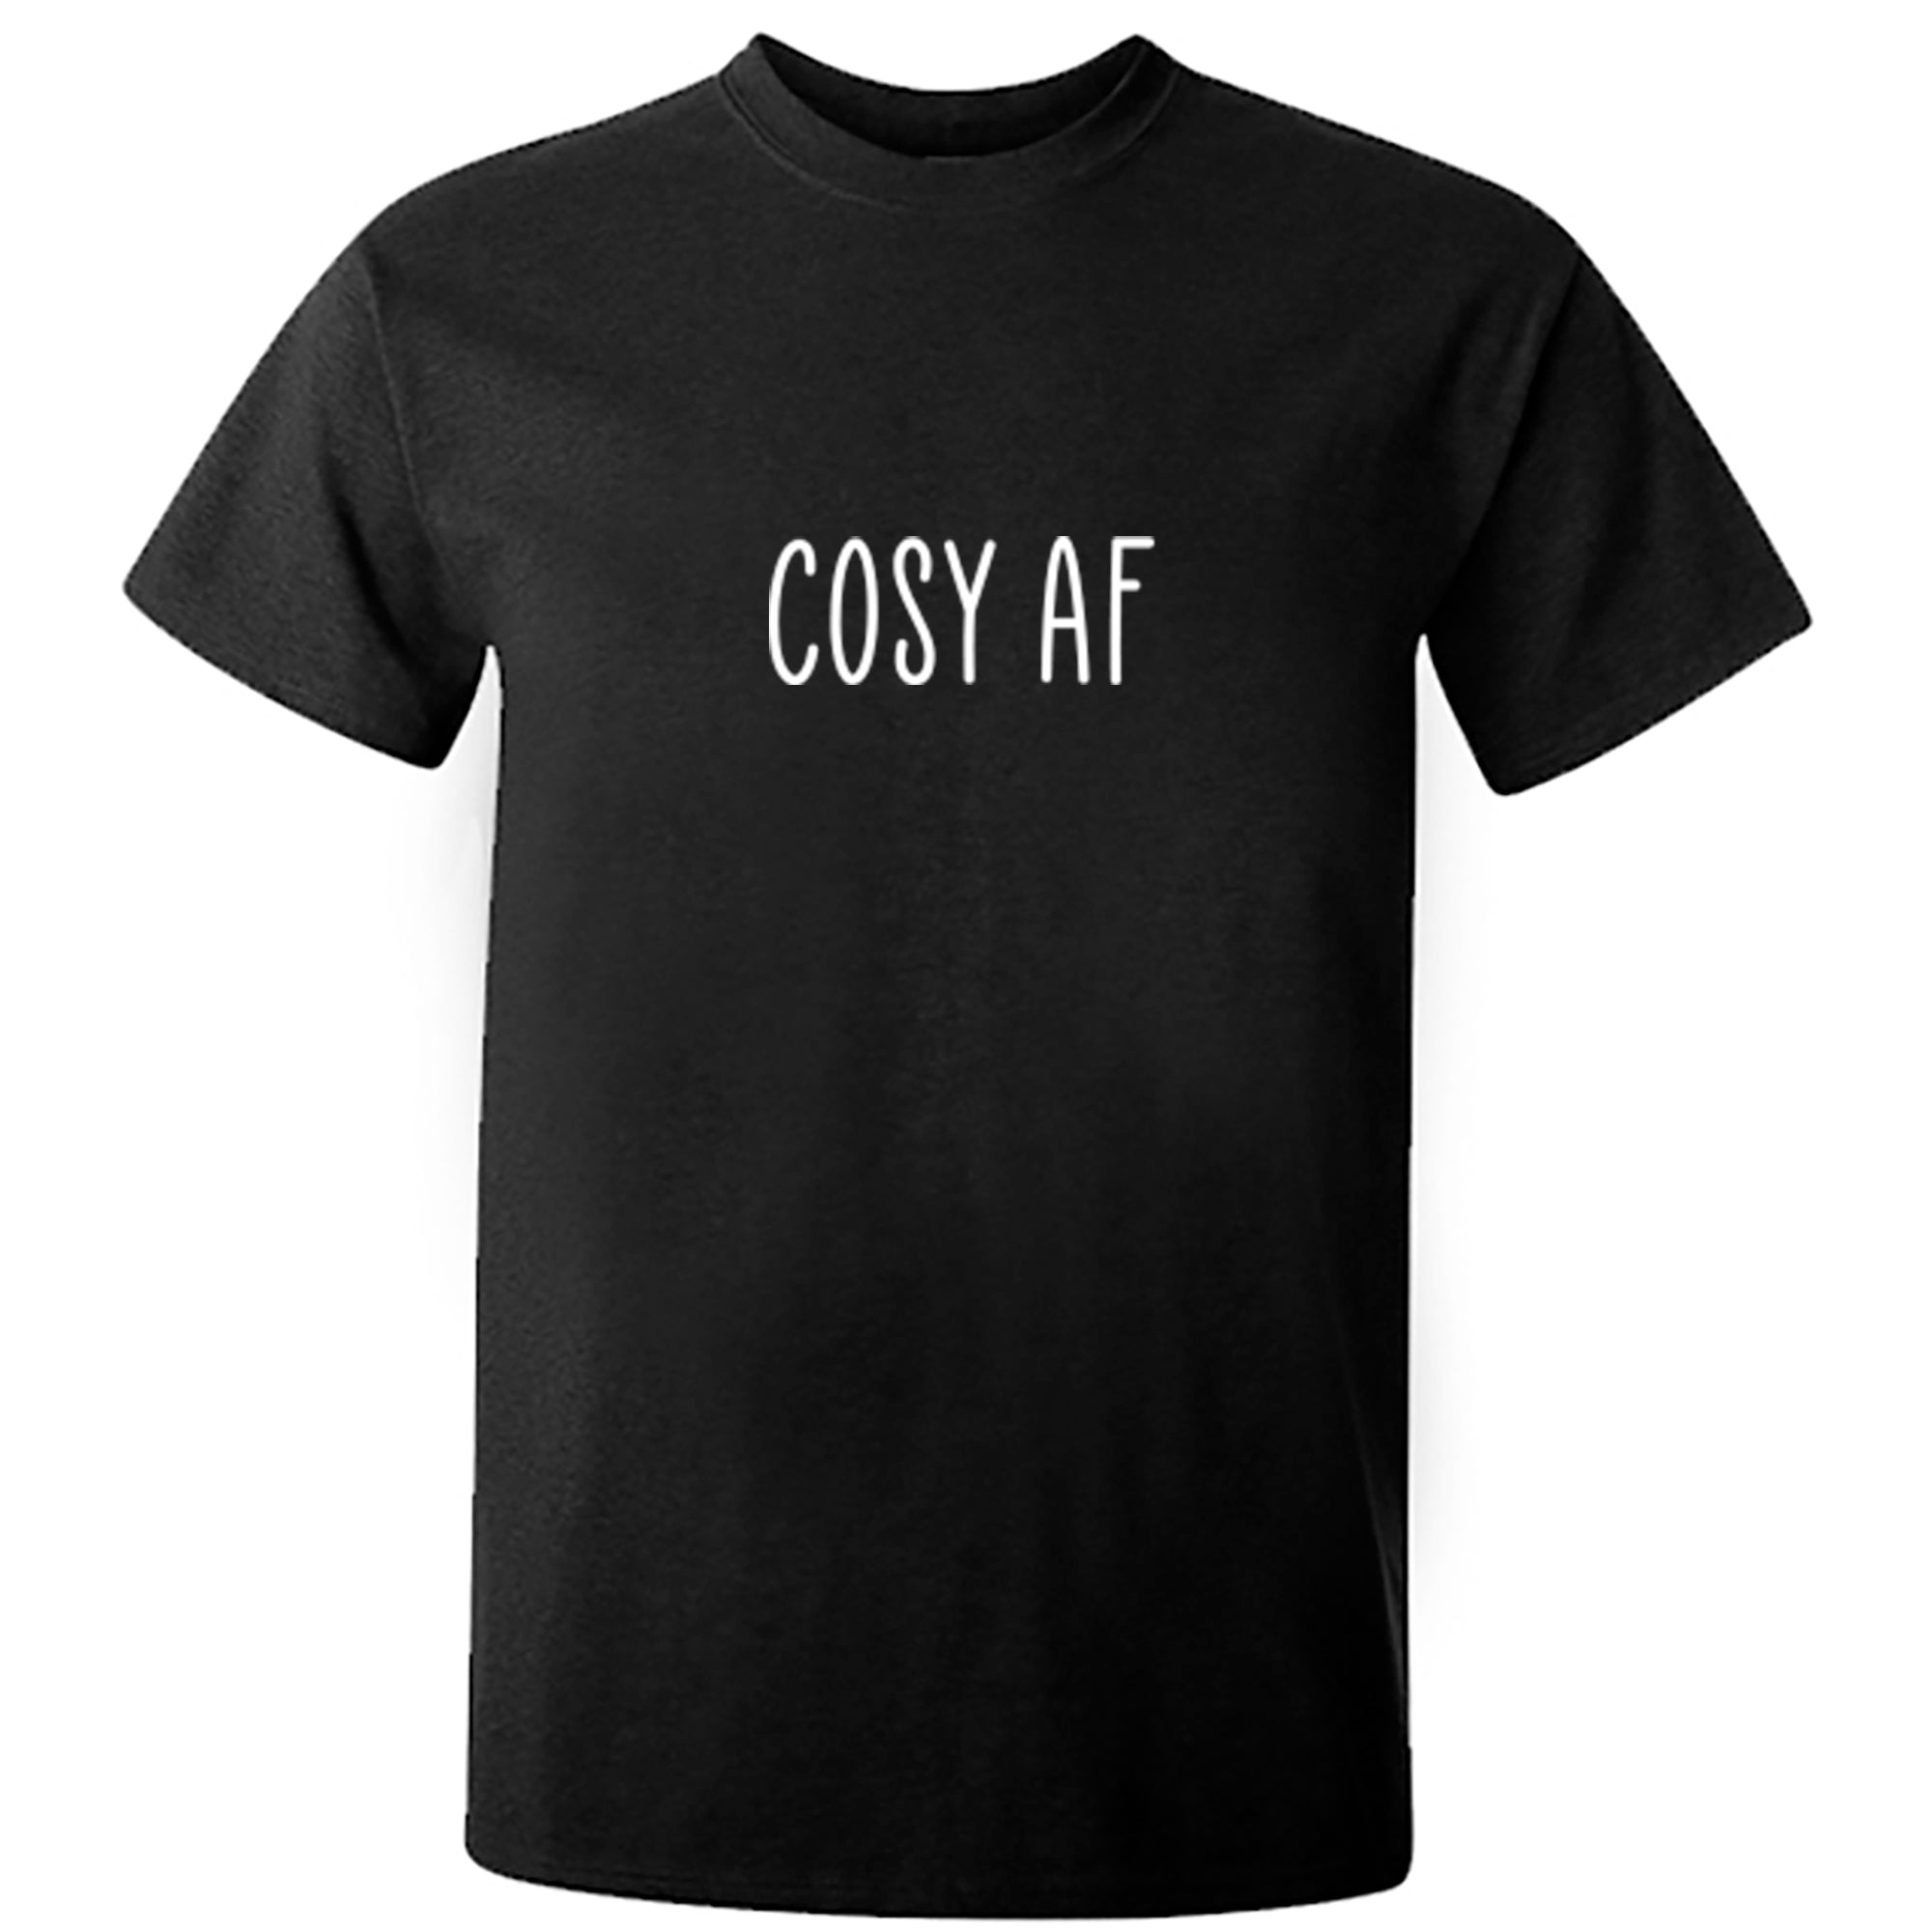 Cosy Af Unisex Fit T-Shirt S1175 - Illustrated Identity Ltd.